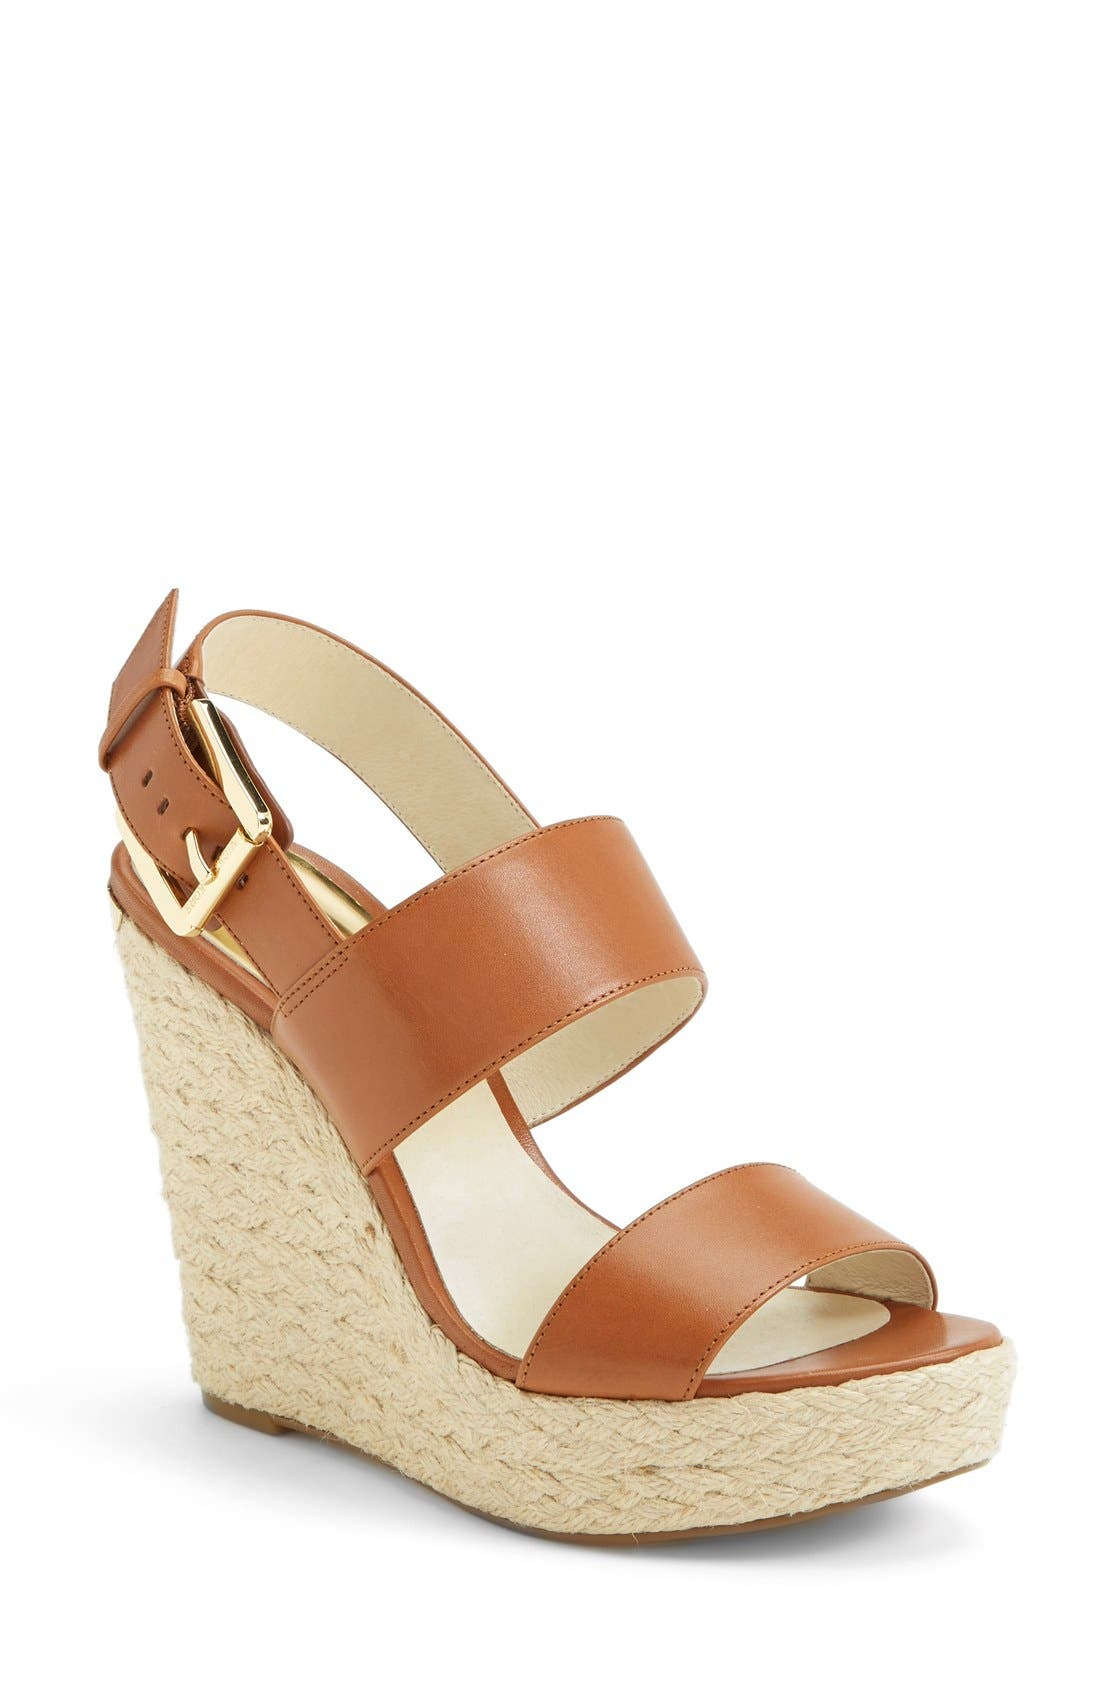 'Posey' Espadrille Wedge Sandal,                         Main,                         color, Luggage